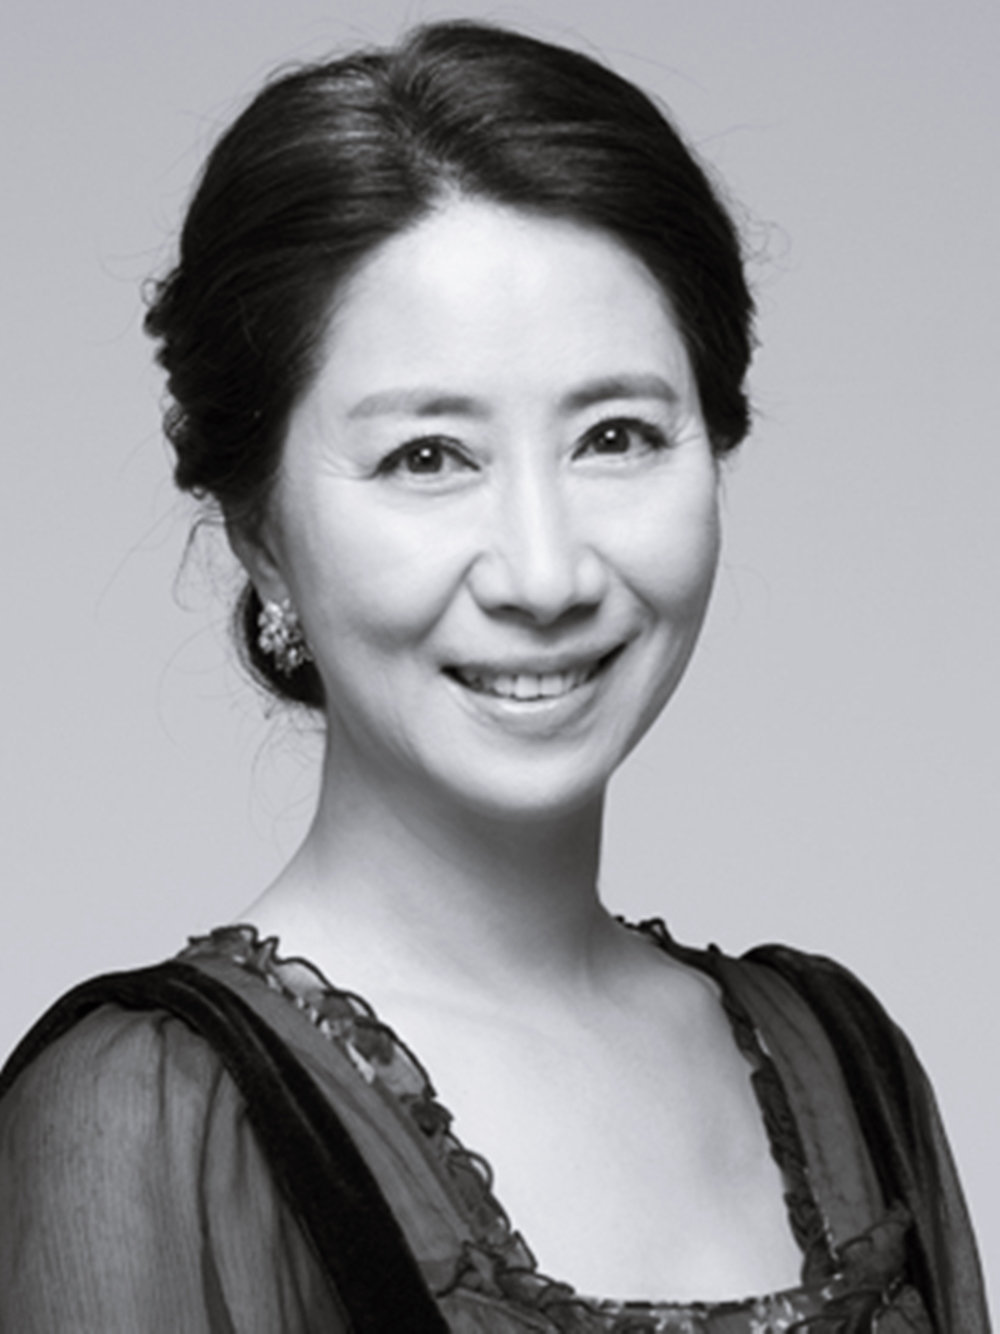 송옥숙 SONG OK SOOK